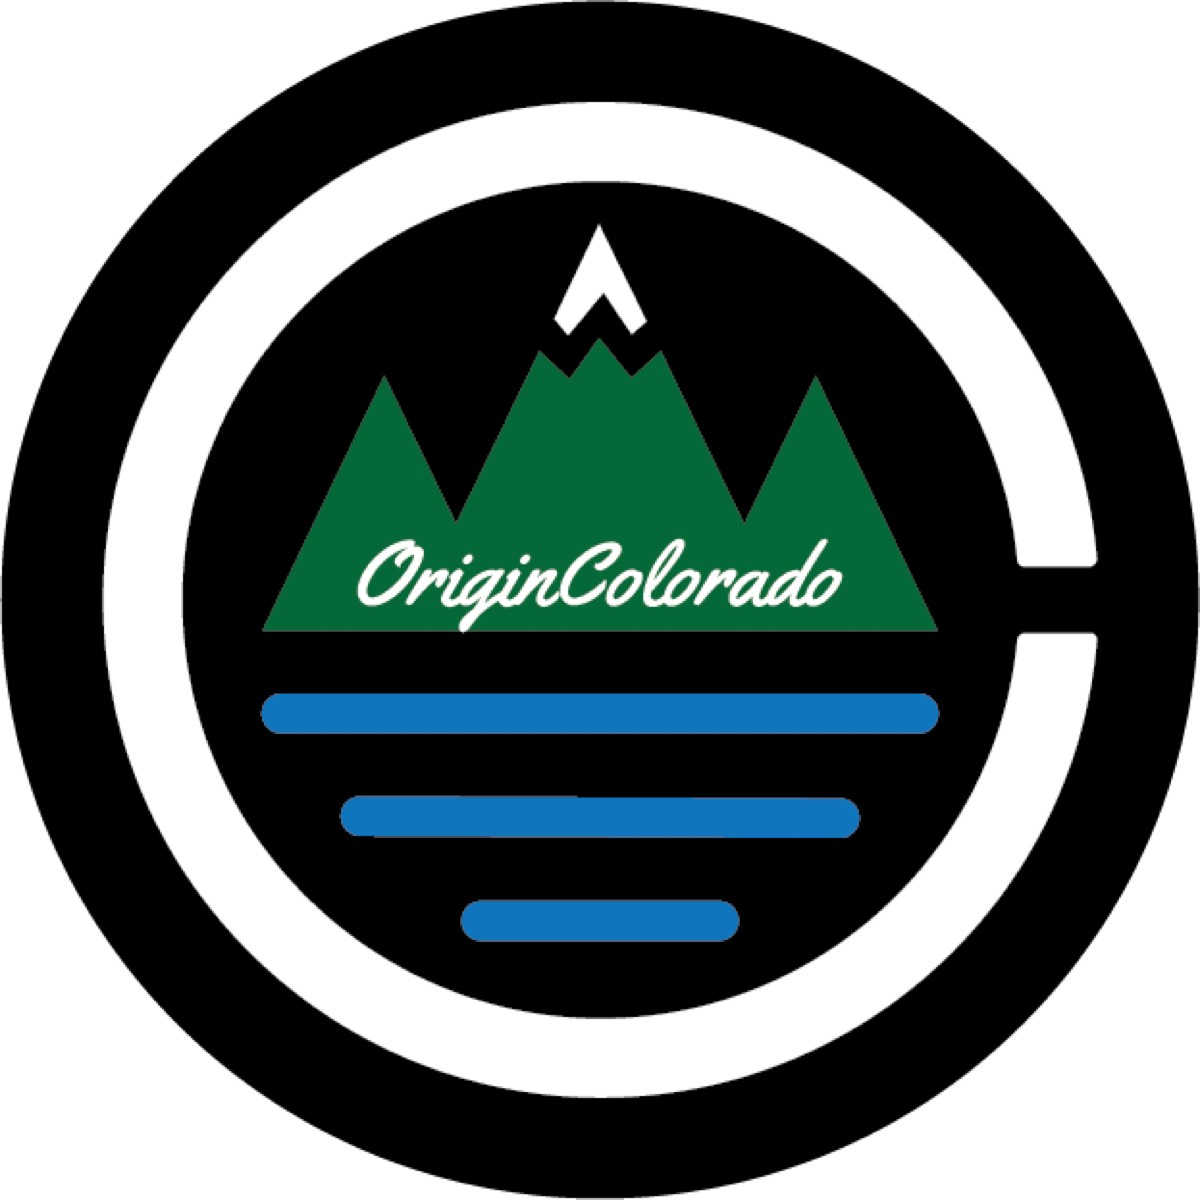 Bump profile picture for @origincolorado